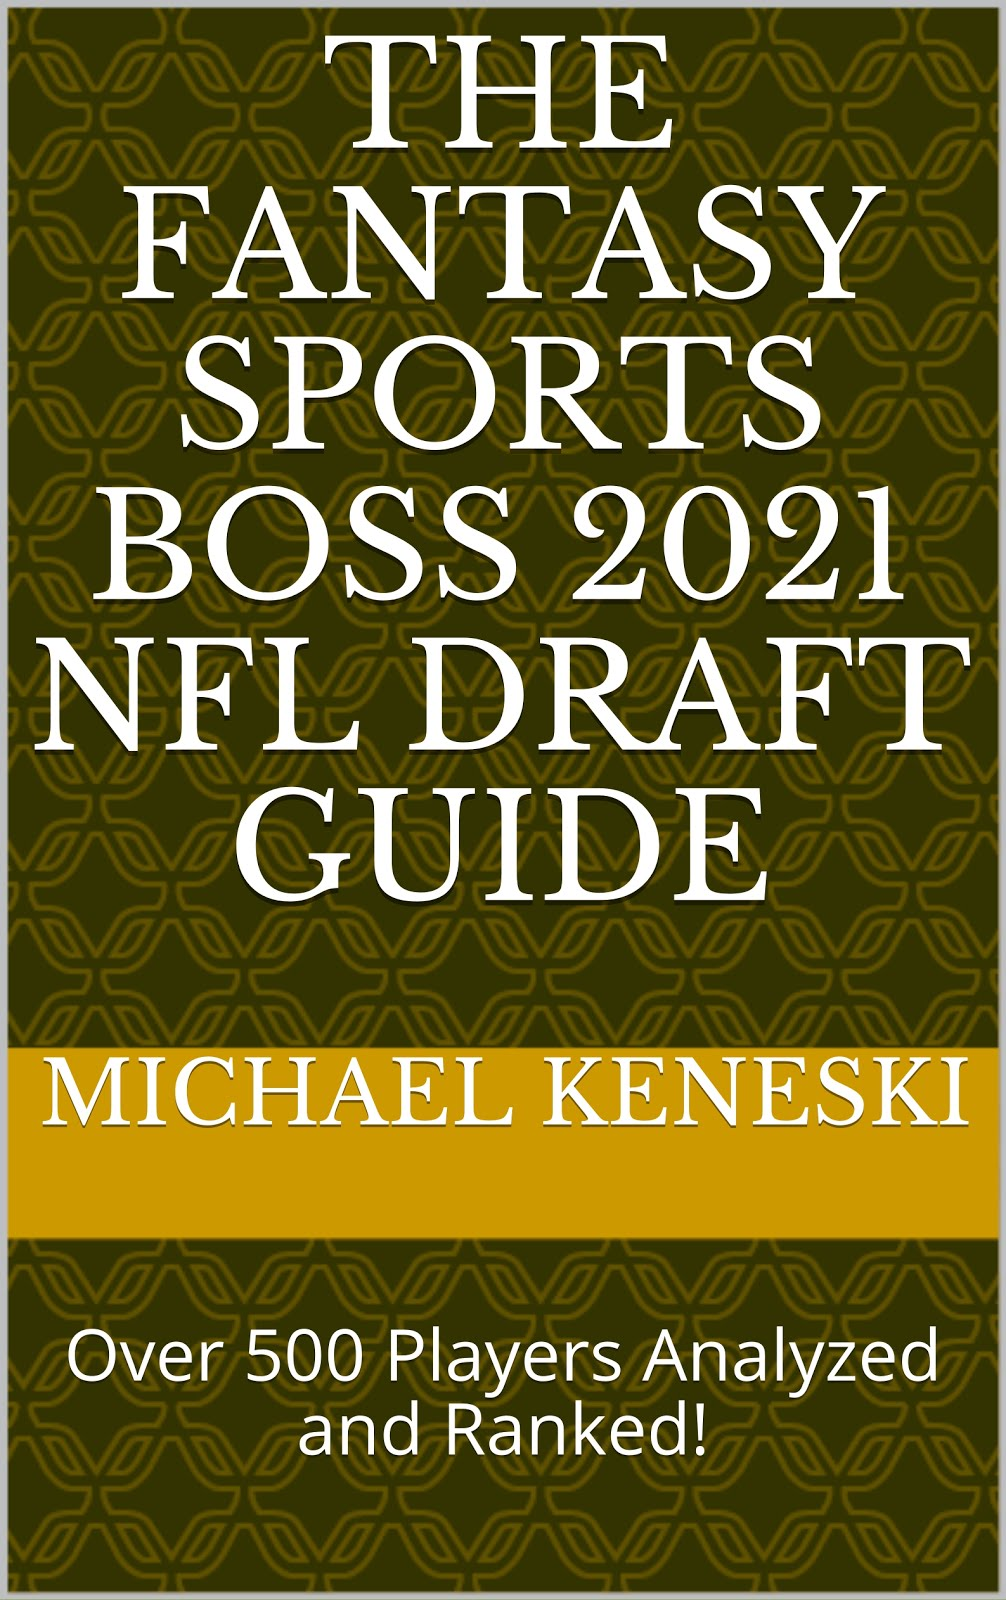 ORDER YOUR PAPERBACK FANTASY SPORTS BOSS NFL DRAFT GUIDE FOR $12.99